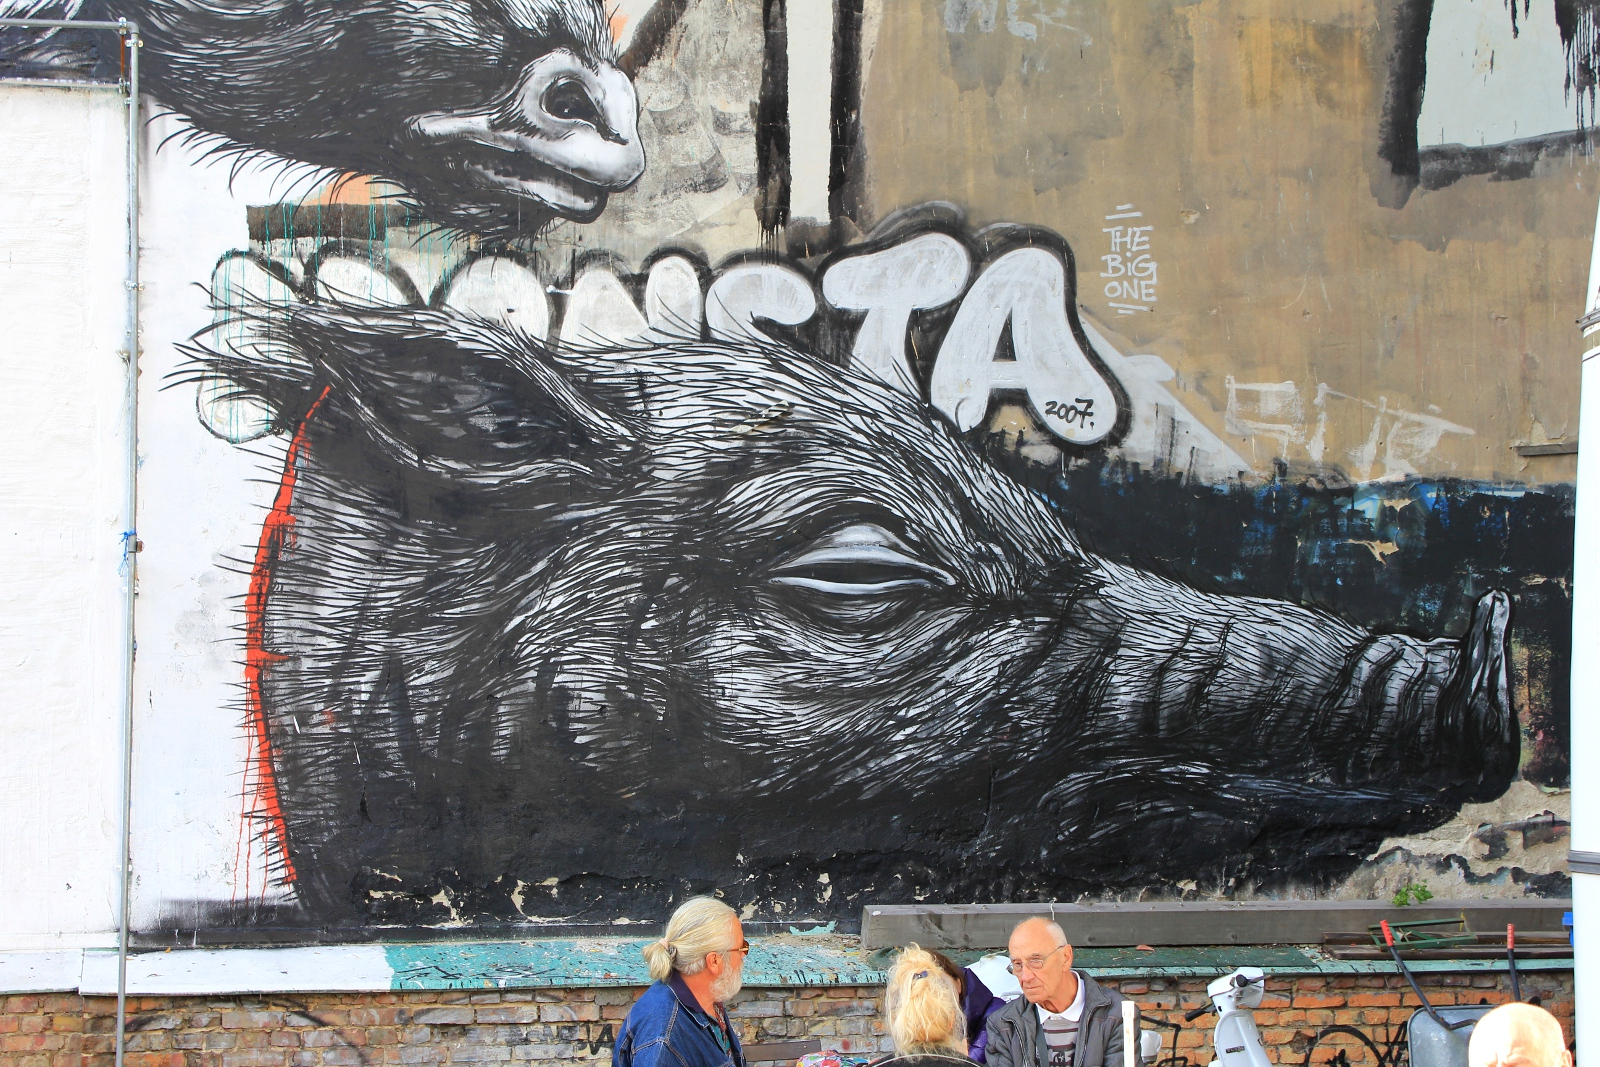 Mural of hanging animals by Belgian Street Artist Roa in Berlin